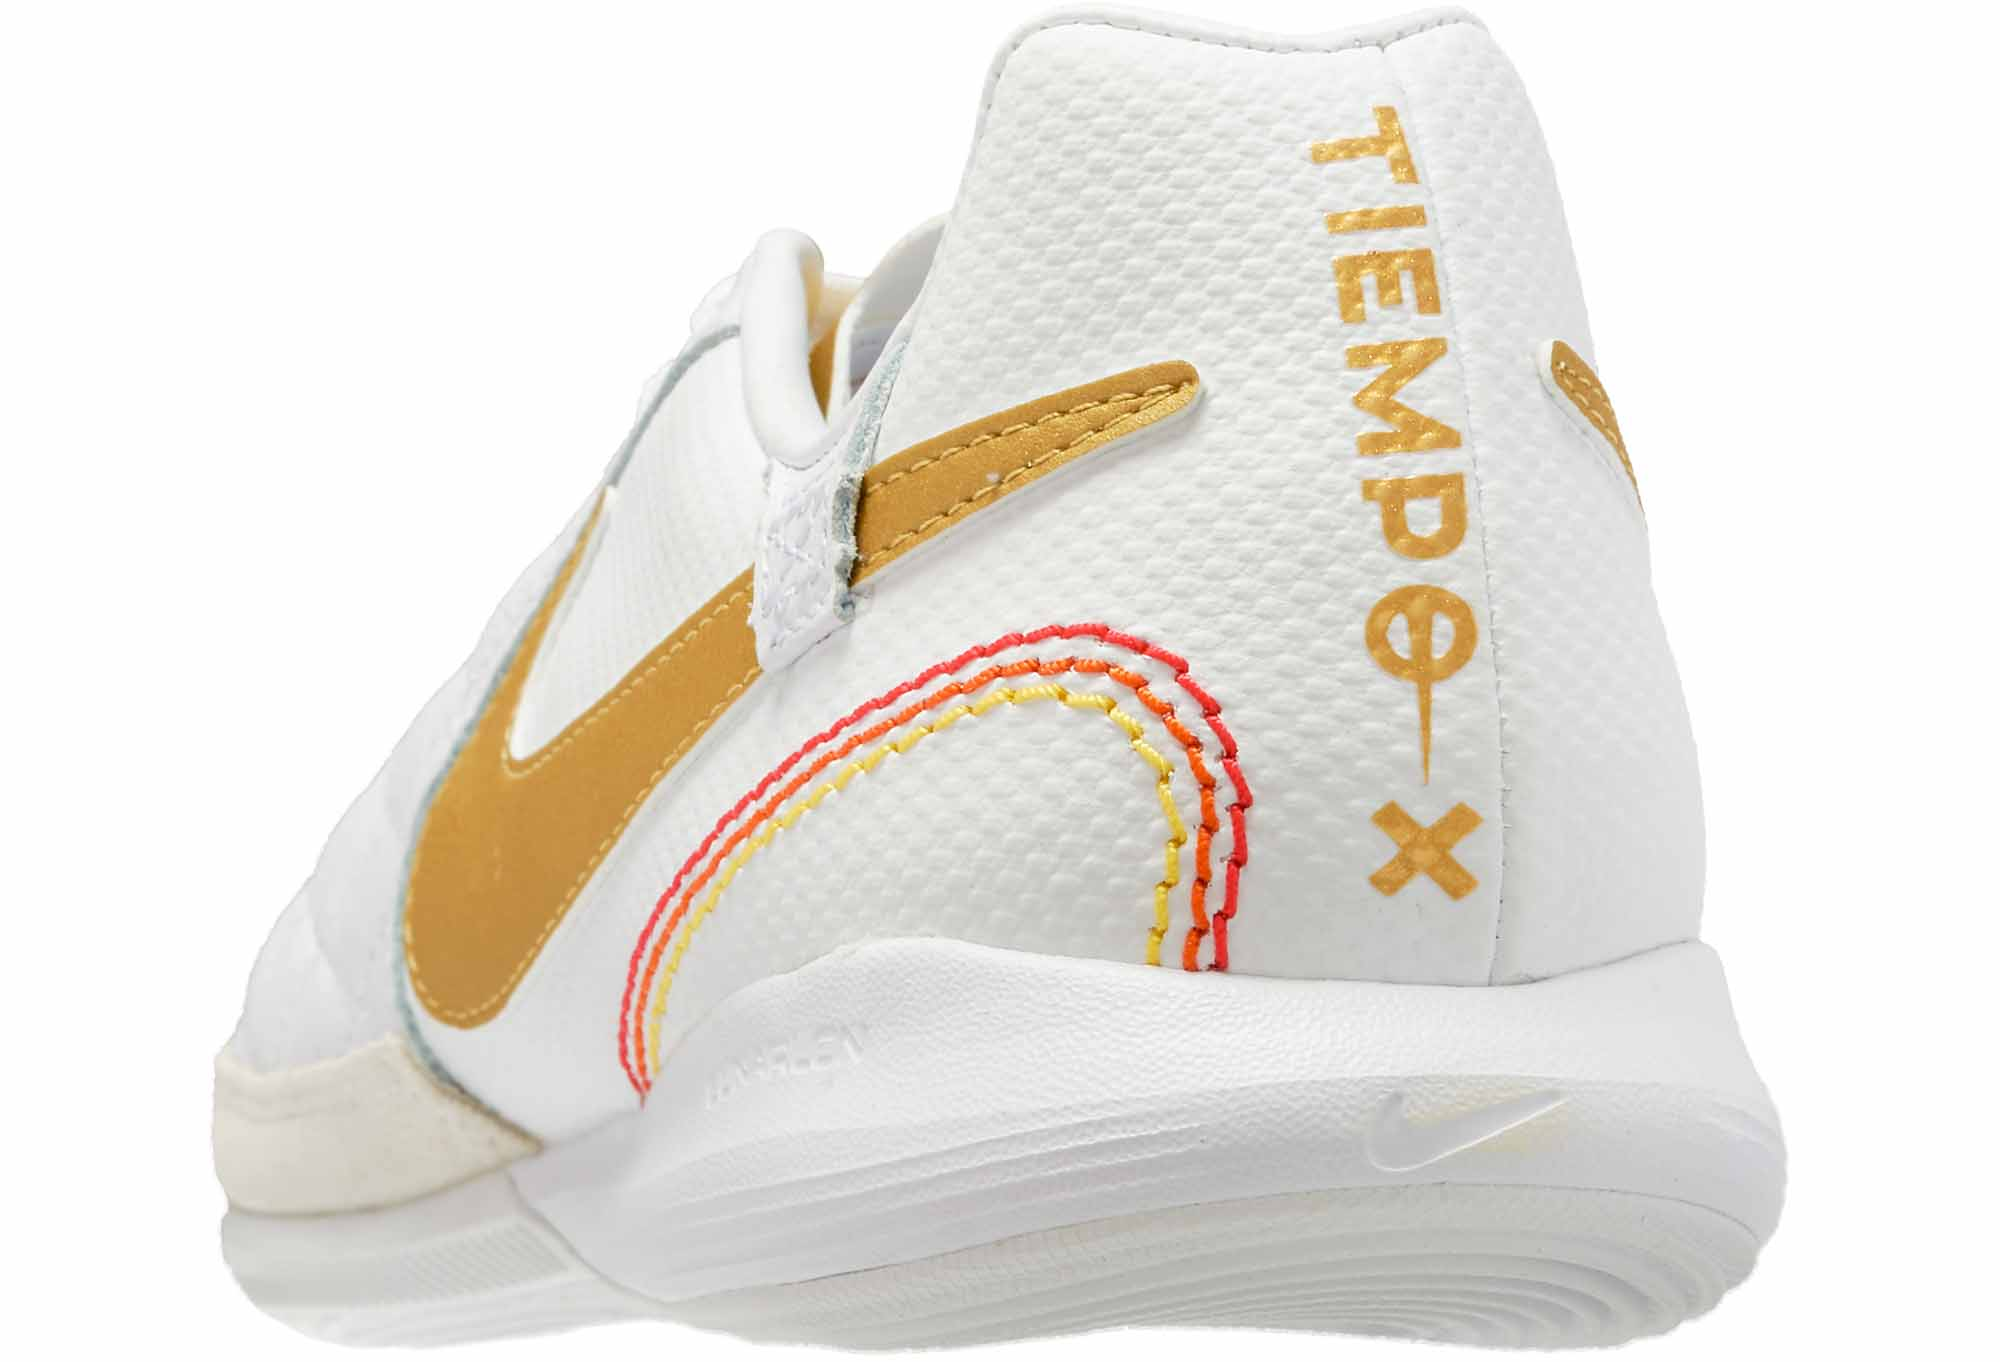 11702b5de8bf Nike Lunar LegendX 7 Pro IC - 10R - White/Metallic Gold/White ...